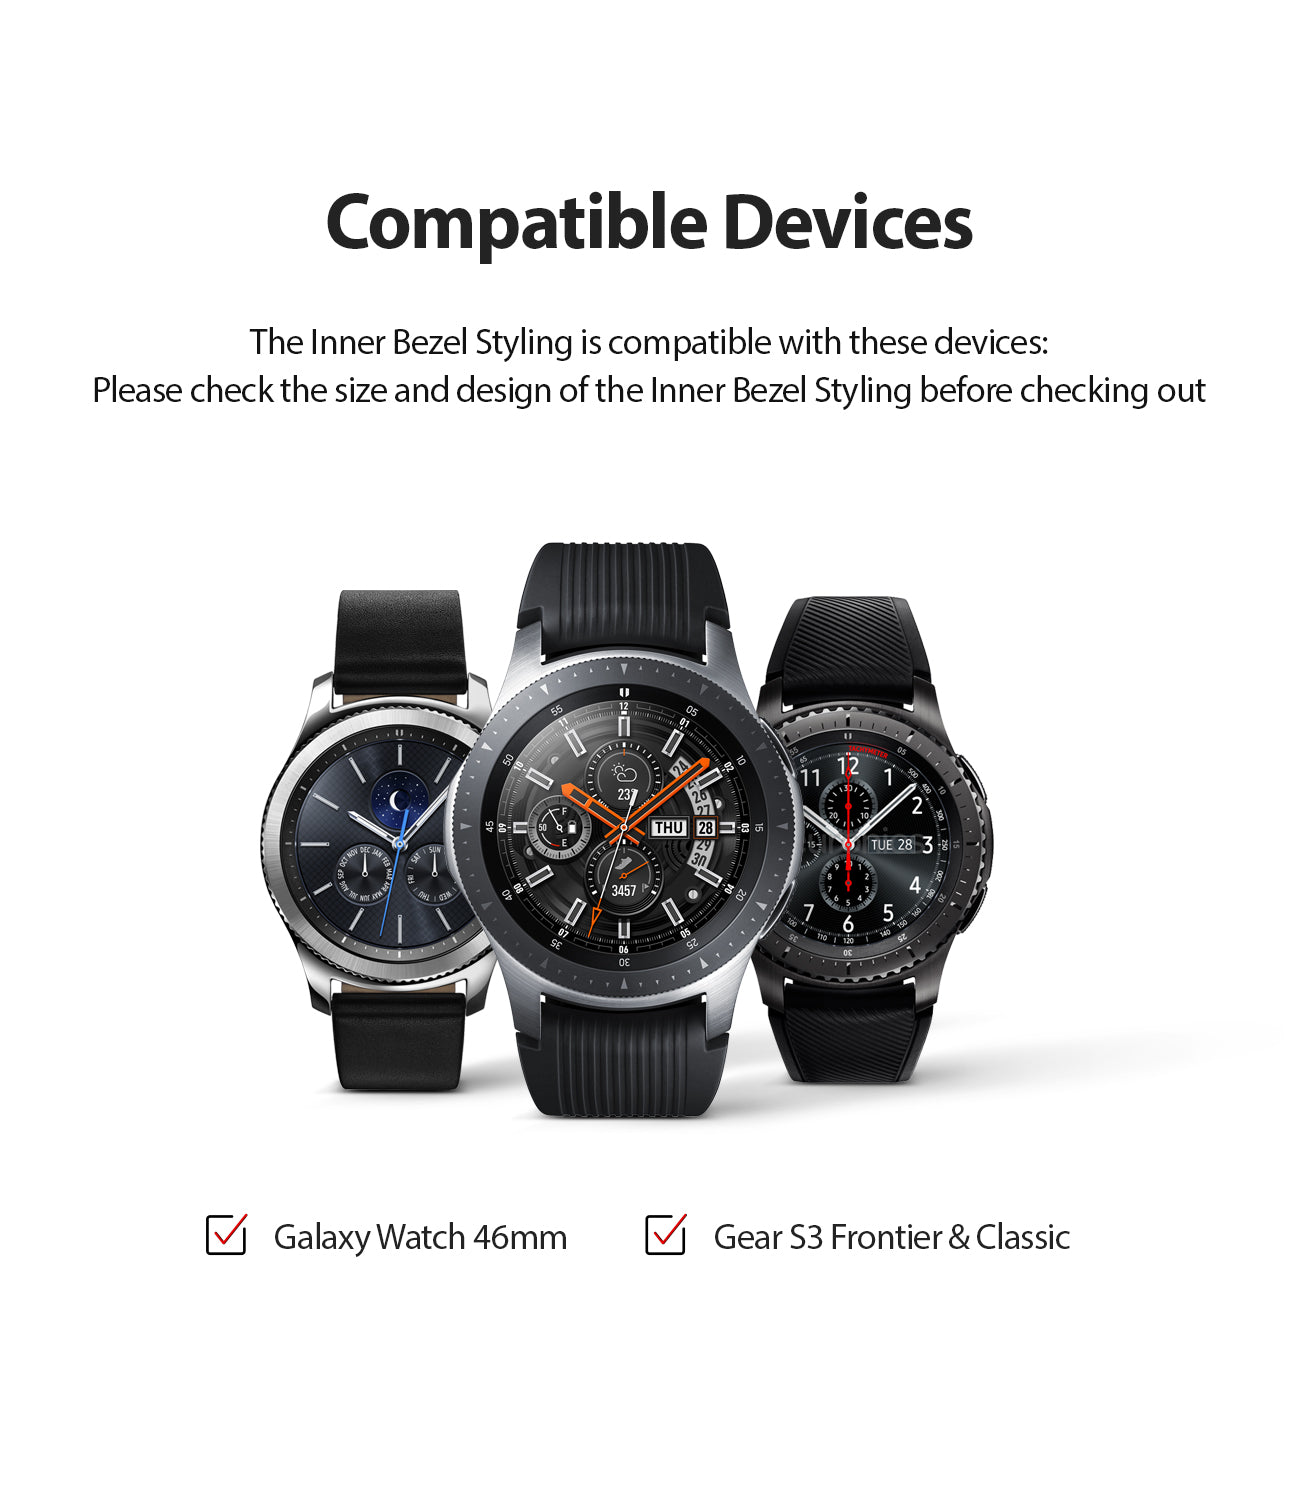 ringke inner bezel styling for samsung galaxy watch 46mm, gear s3 frontier, and gear s3 classic, 46-inner-02, stainless steel, compatibility